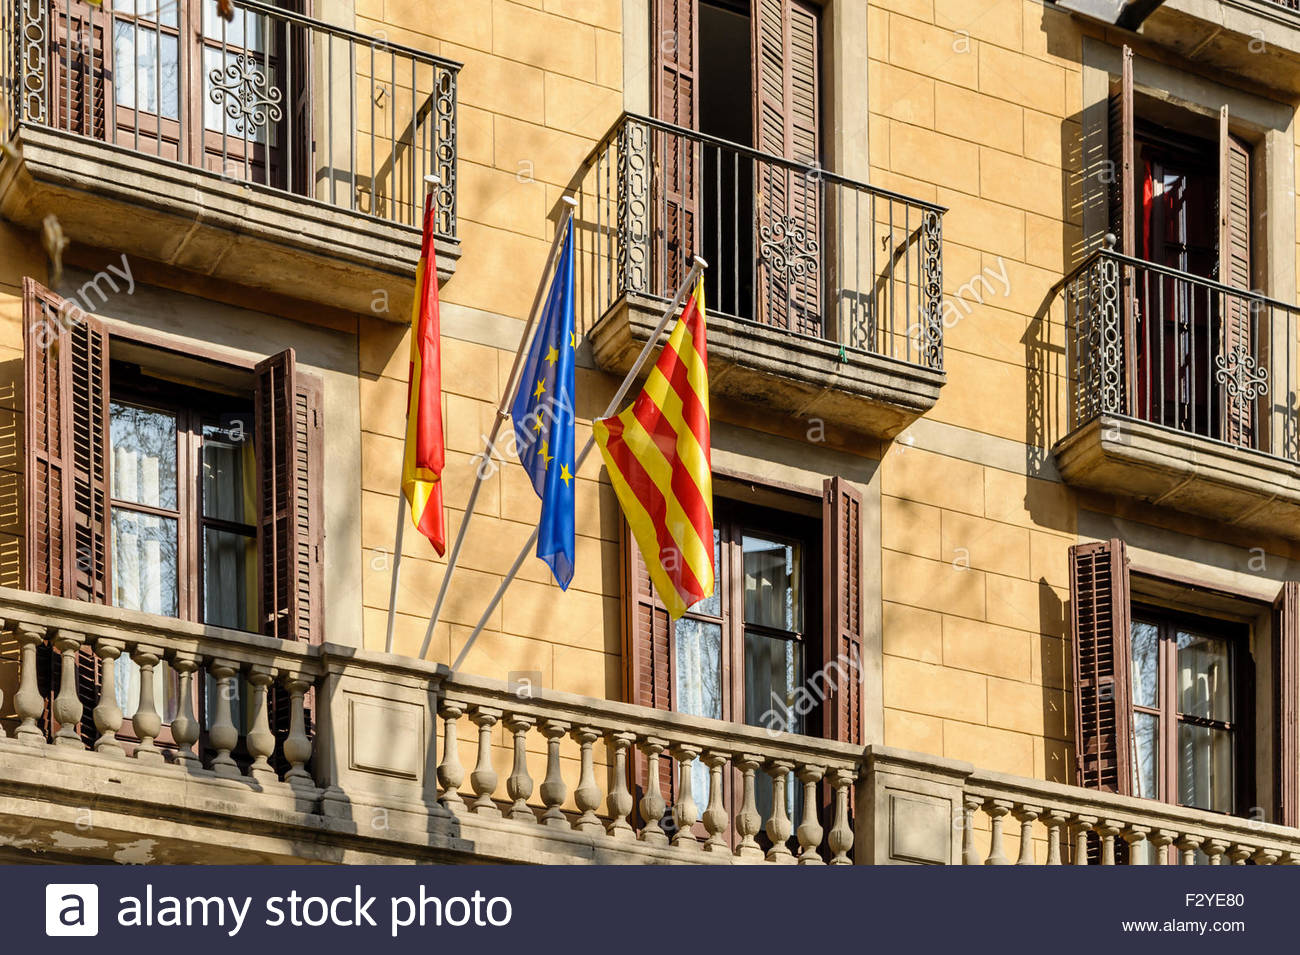 Flags of European Union, Spain and Catalonia outside a building in Barcelona. Stock Photo